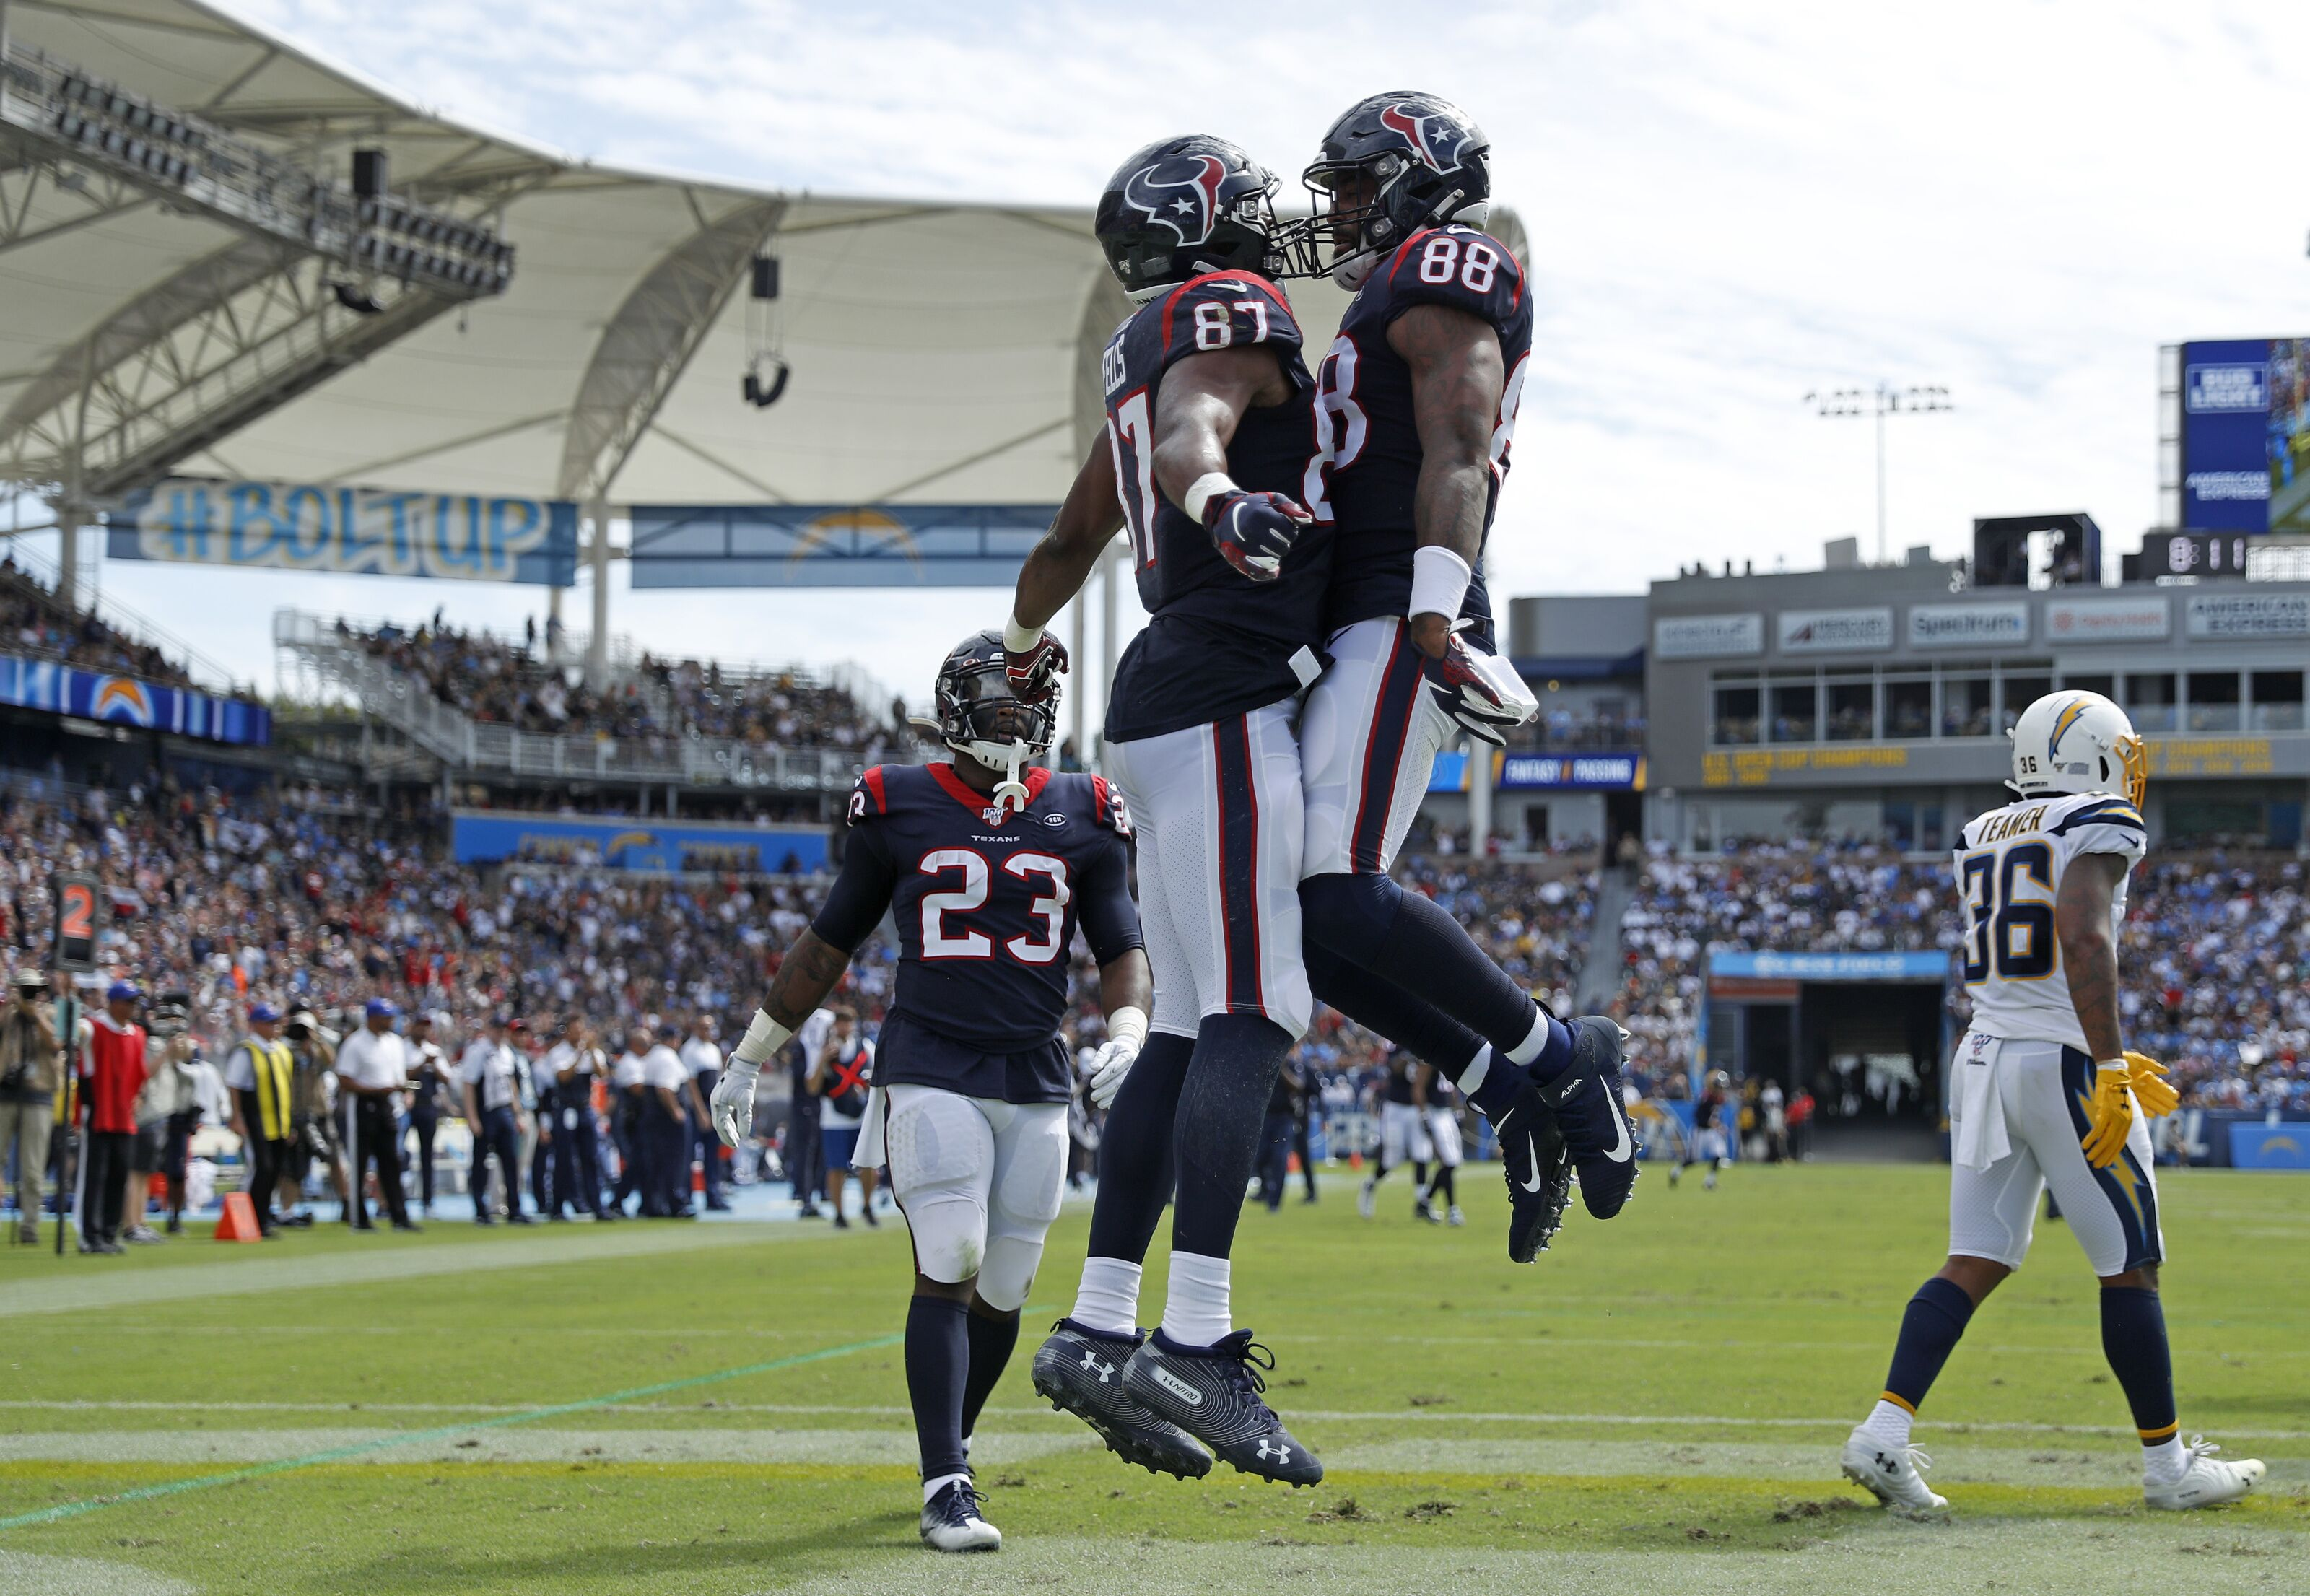 Texans vs. Chargers: Game highlights, final score, and more